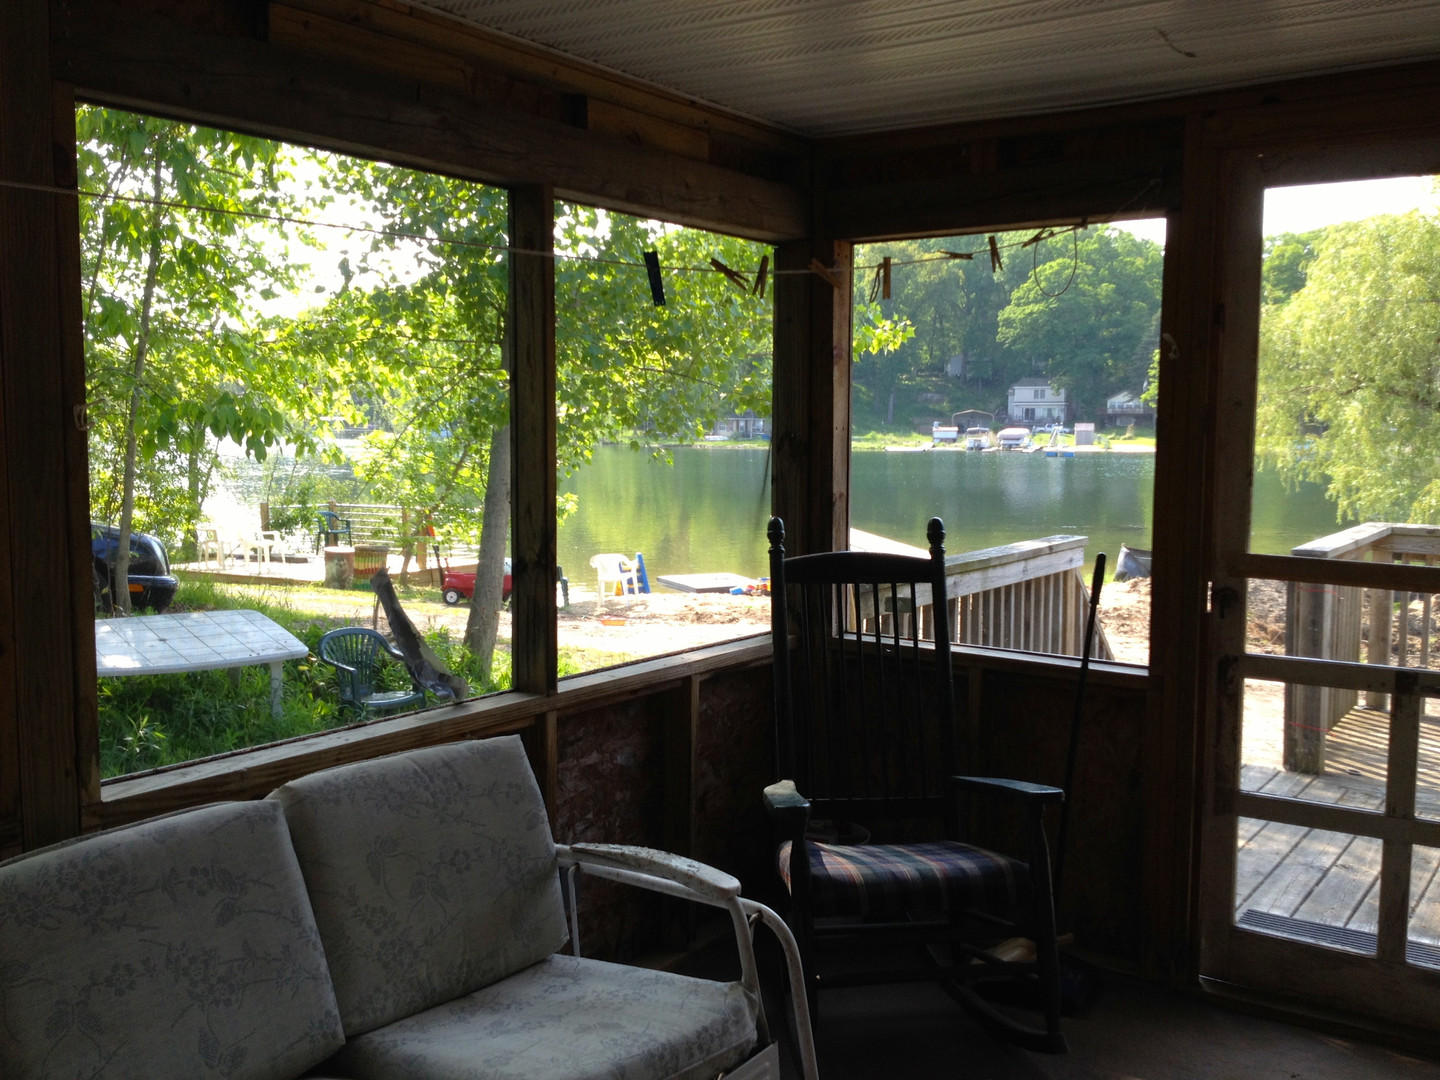 View of Beach and Lake from Screened Porch